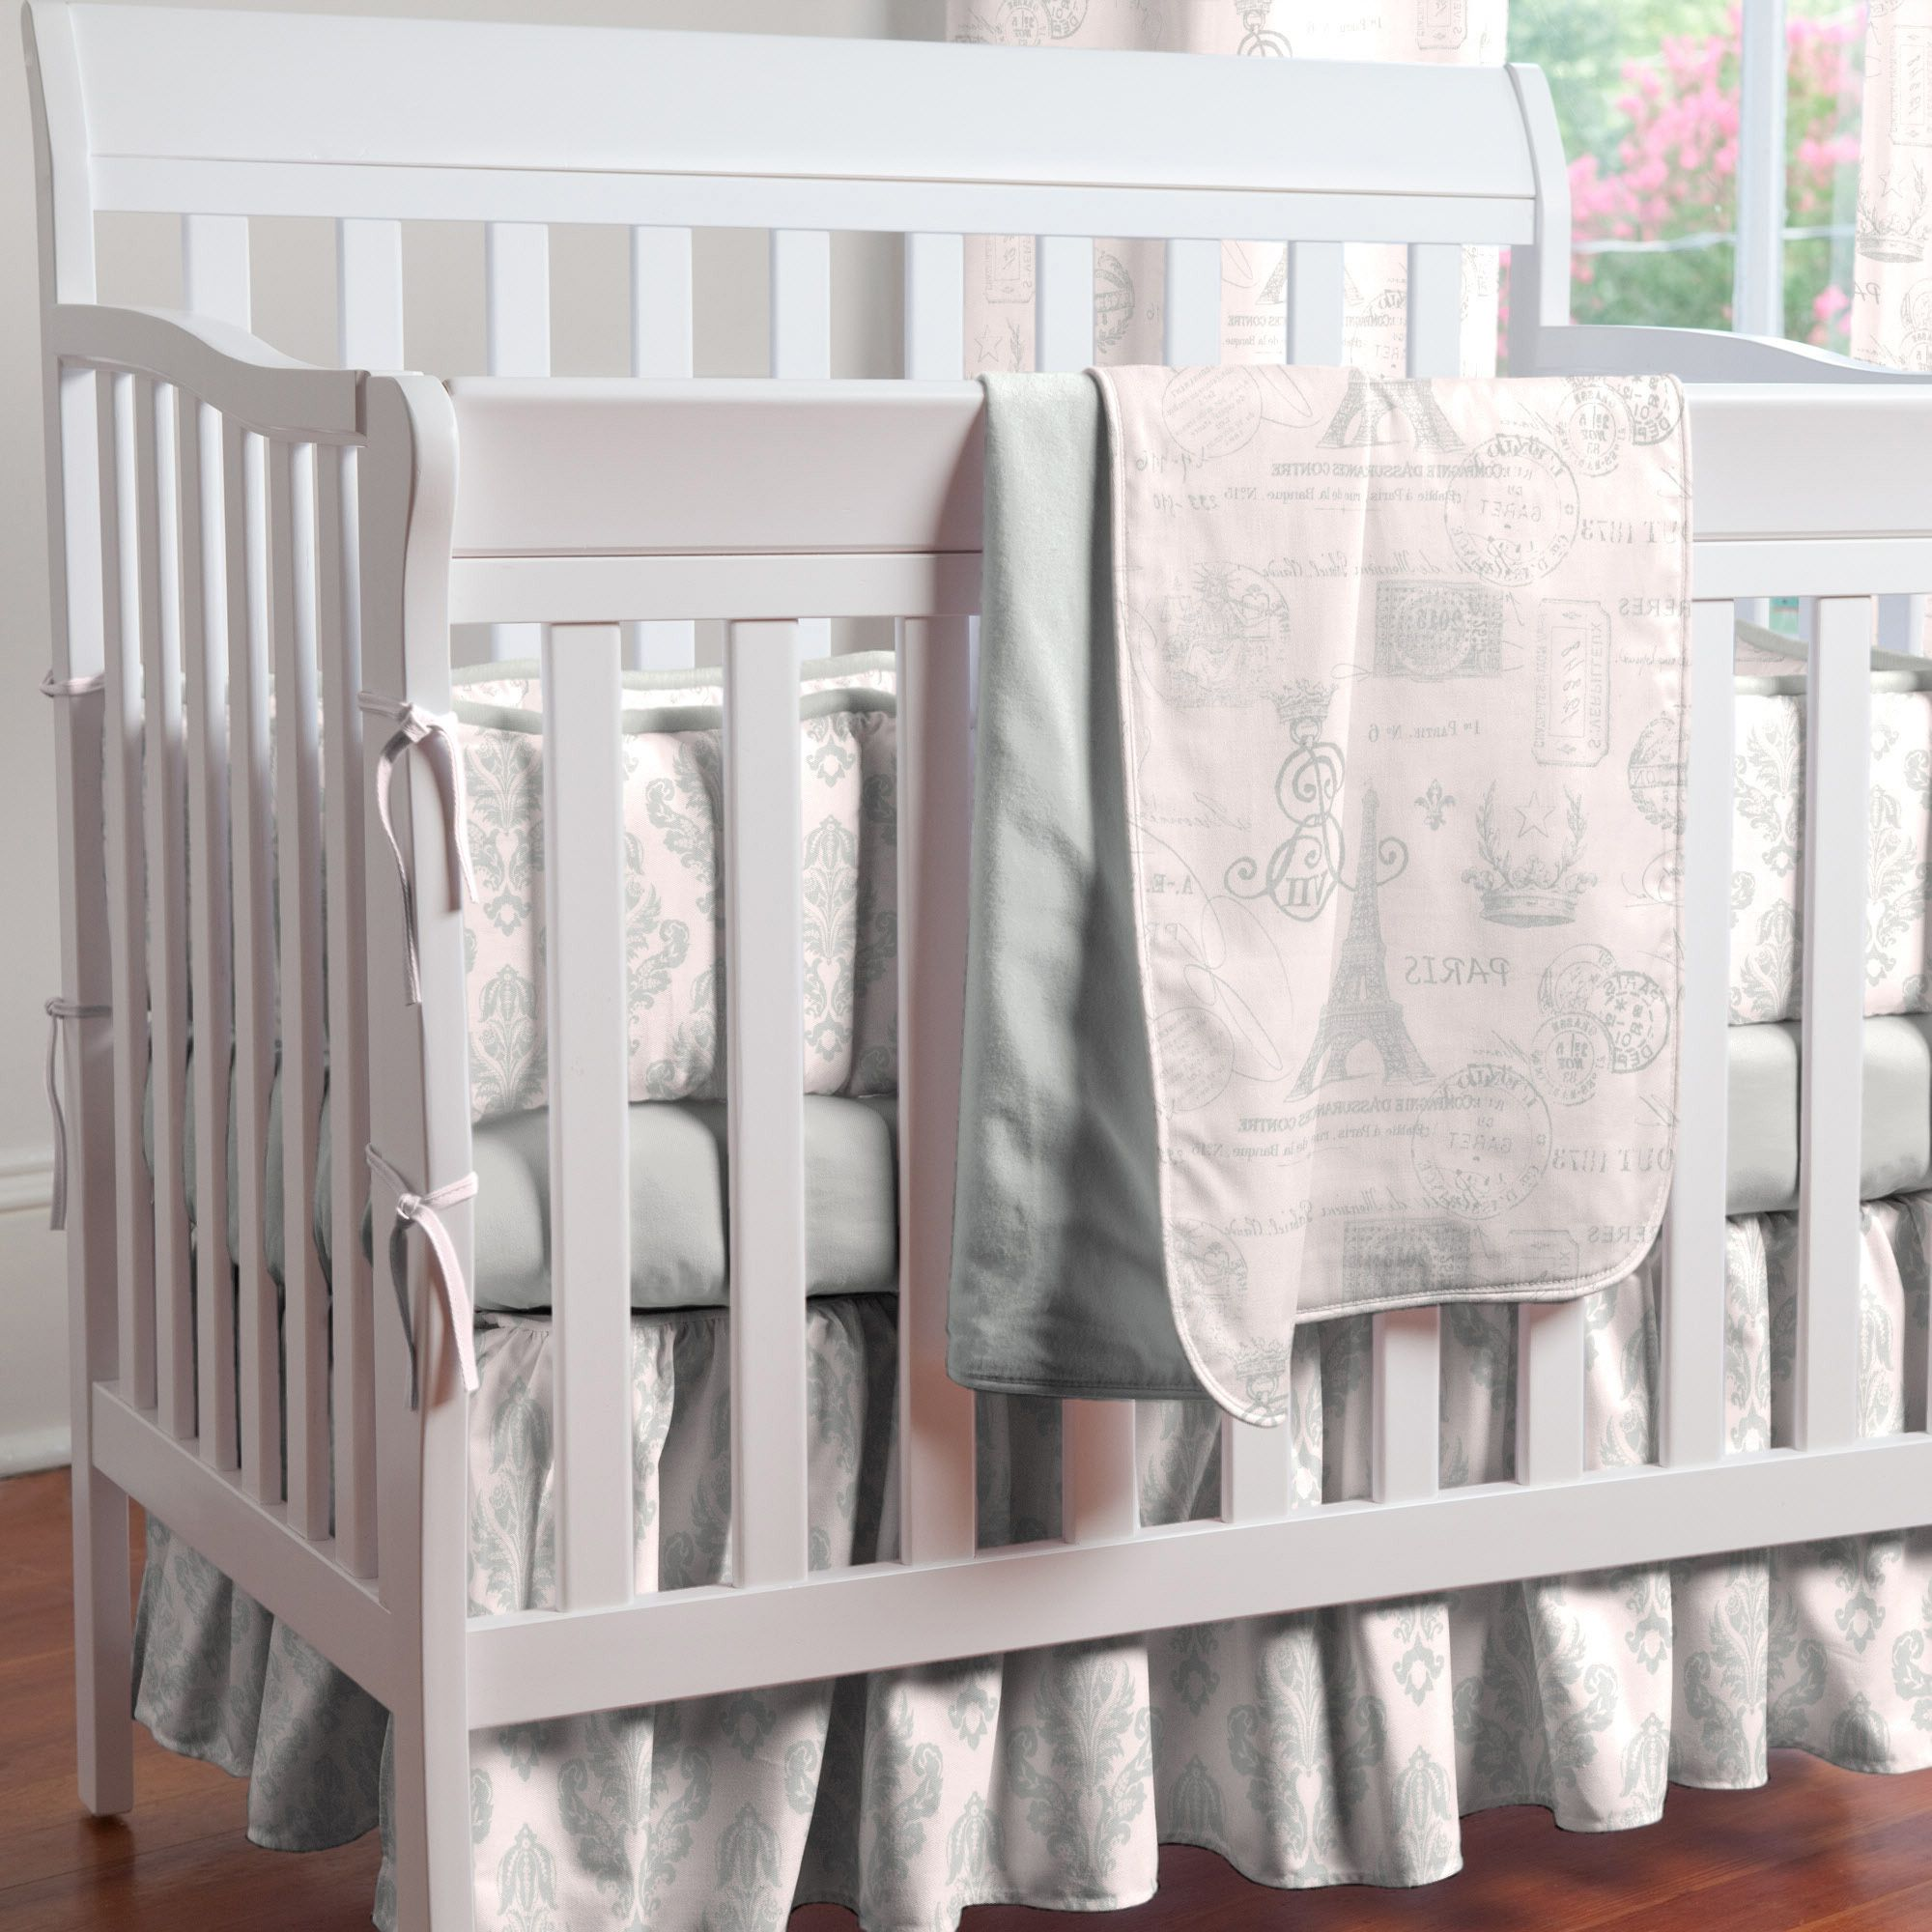 Mini Crib Bedding Sets For Girls Portable Crib Bedding Crib Bedding Baby Girl Crib Bedding Sets